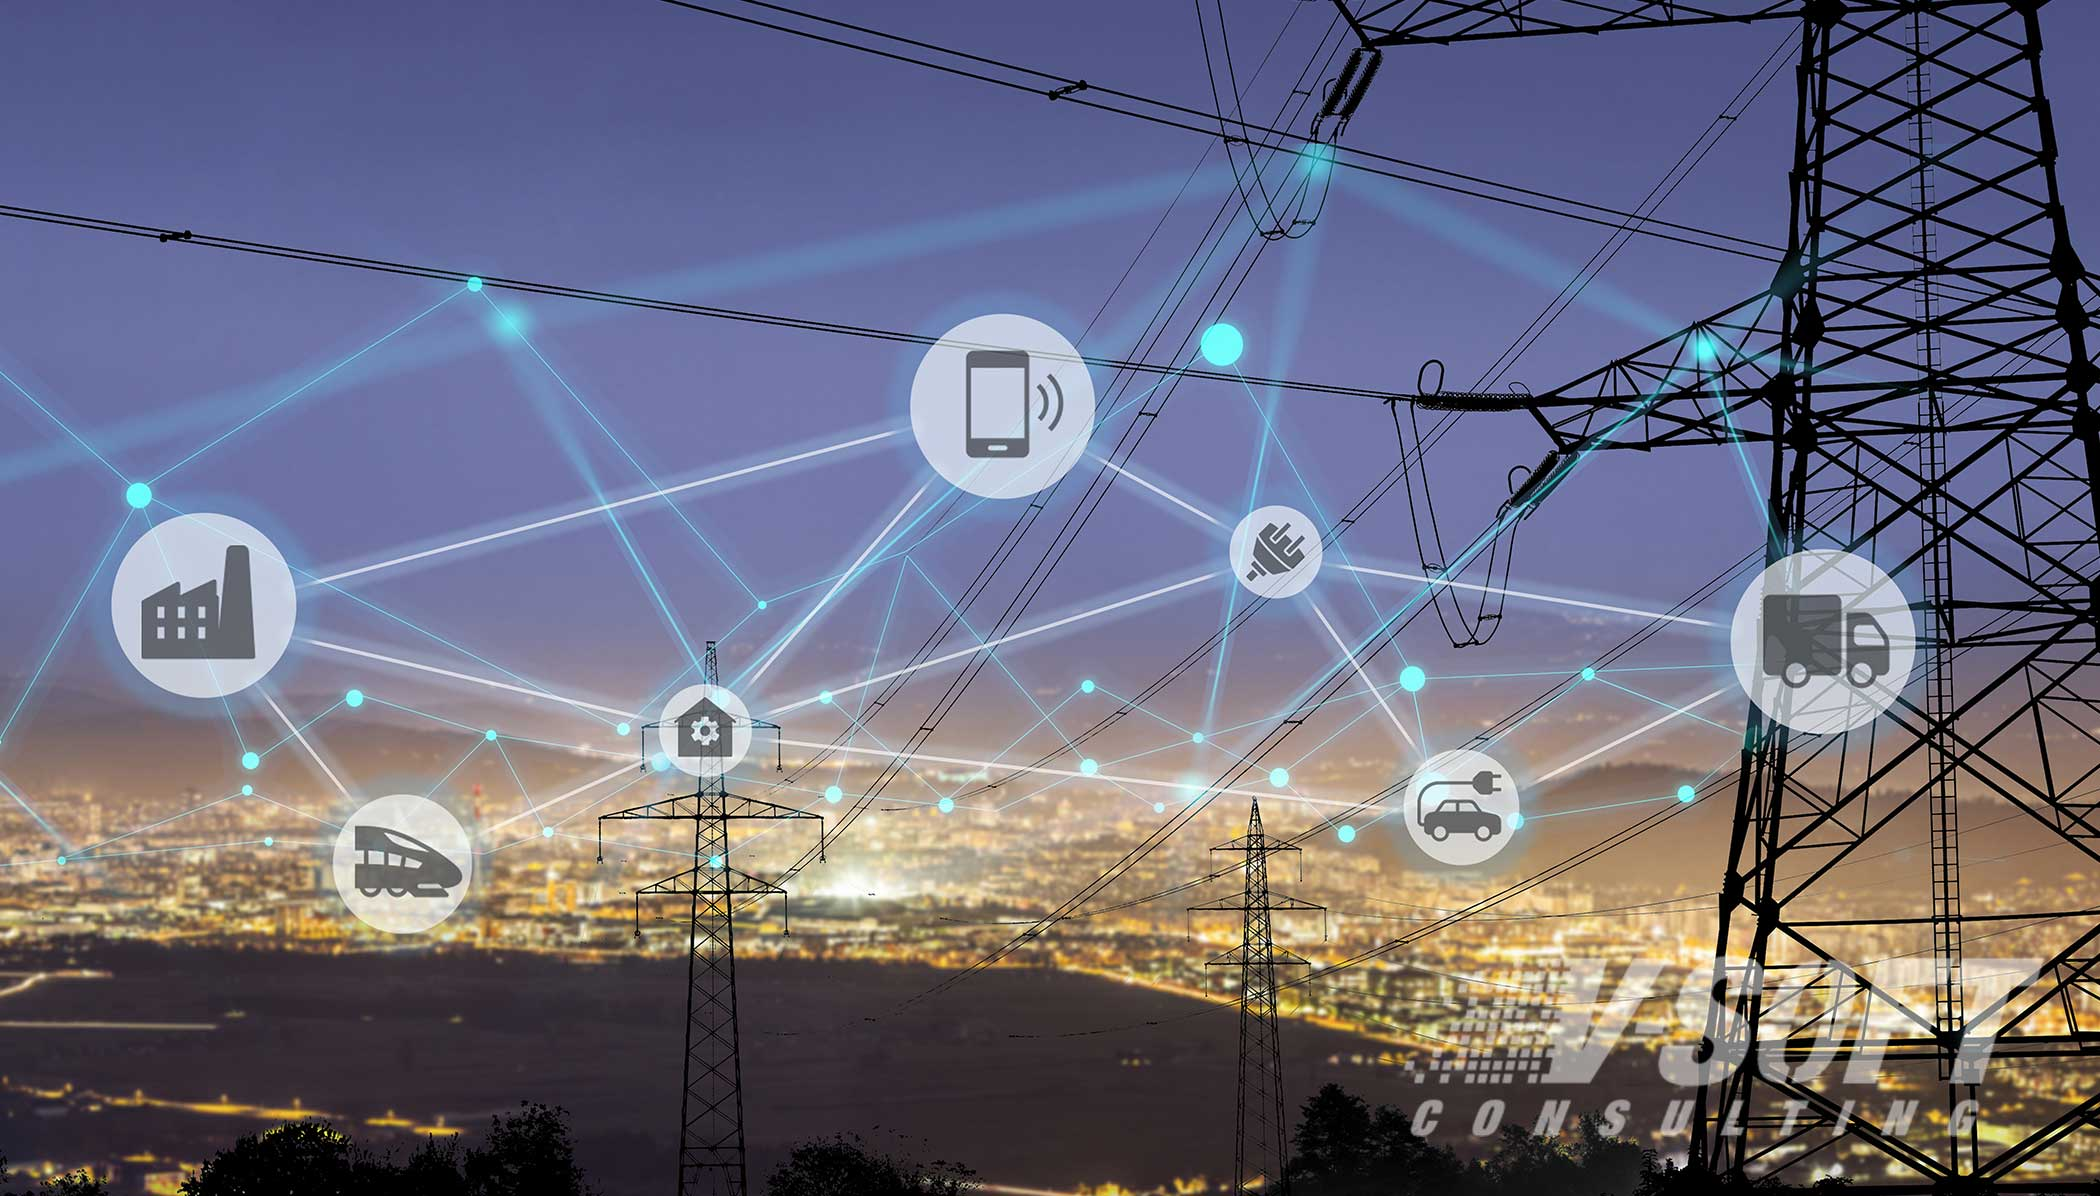 Manage and Optimize Power grids with artificial intelligence